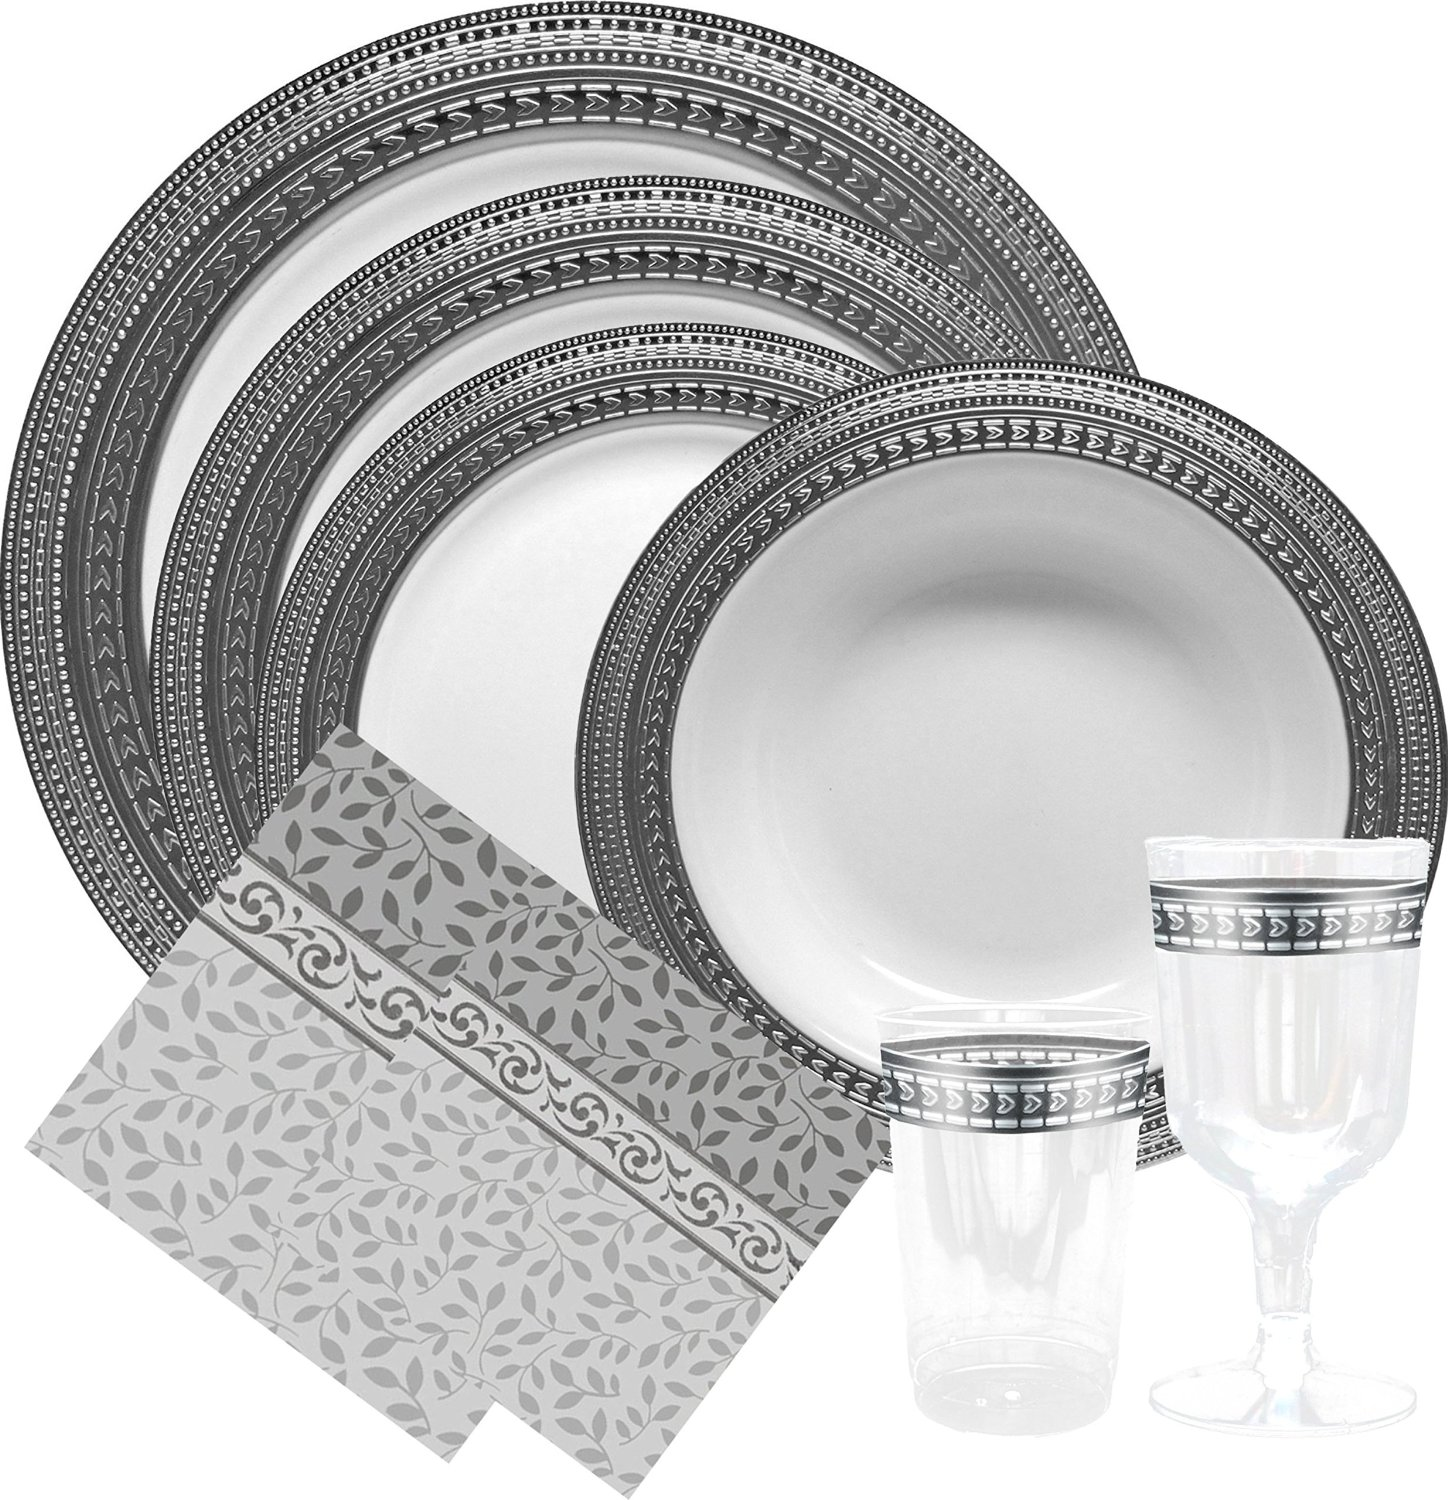 fancy paper plates Celebrate using the most unique paper plates out there make sure to check out matching paper napkins to really complement your plates we have all the party supplies you need with a large selection of decor, banners and even paper coasters.